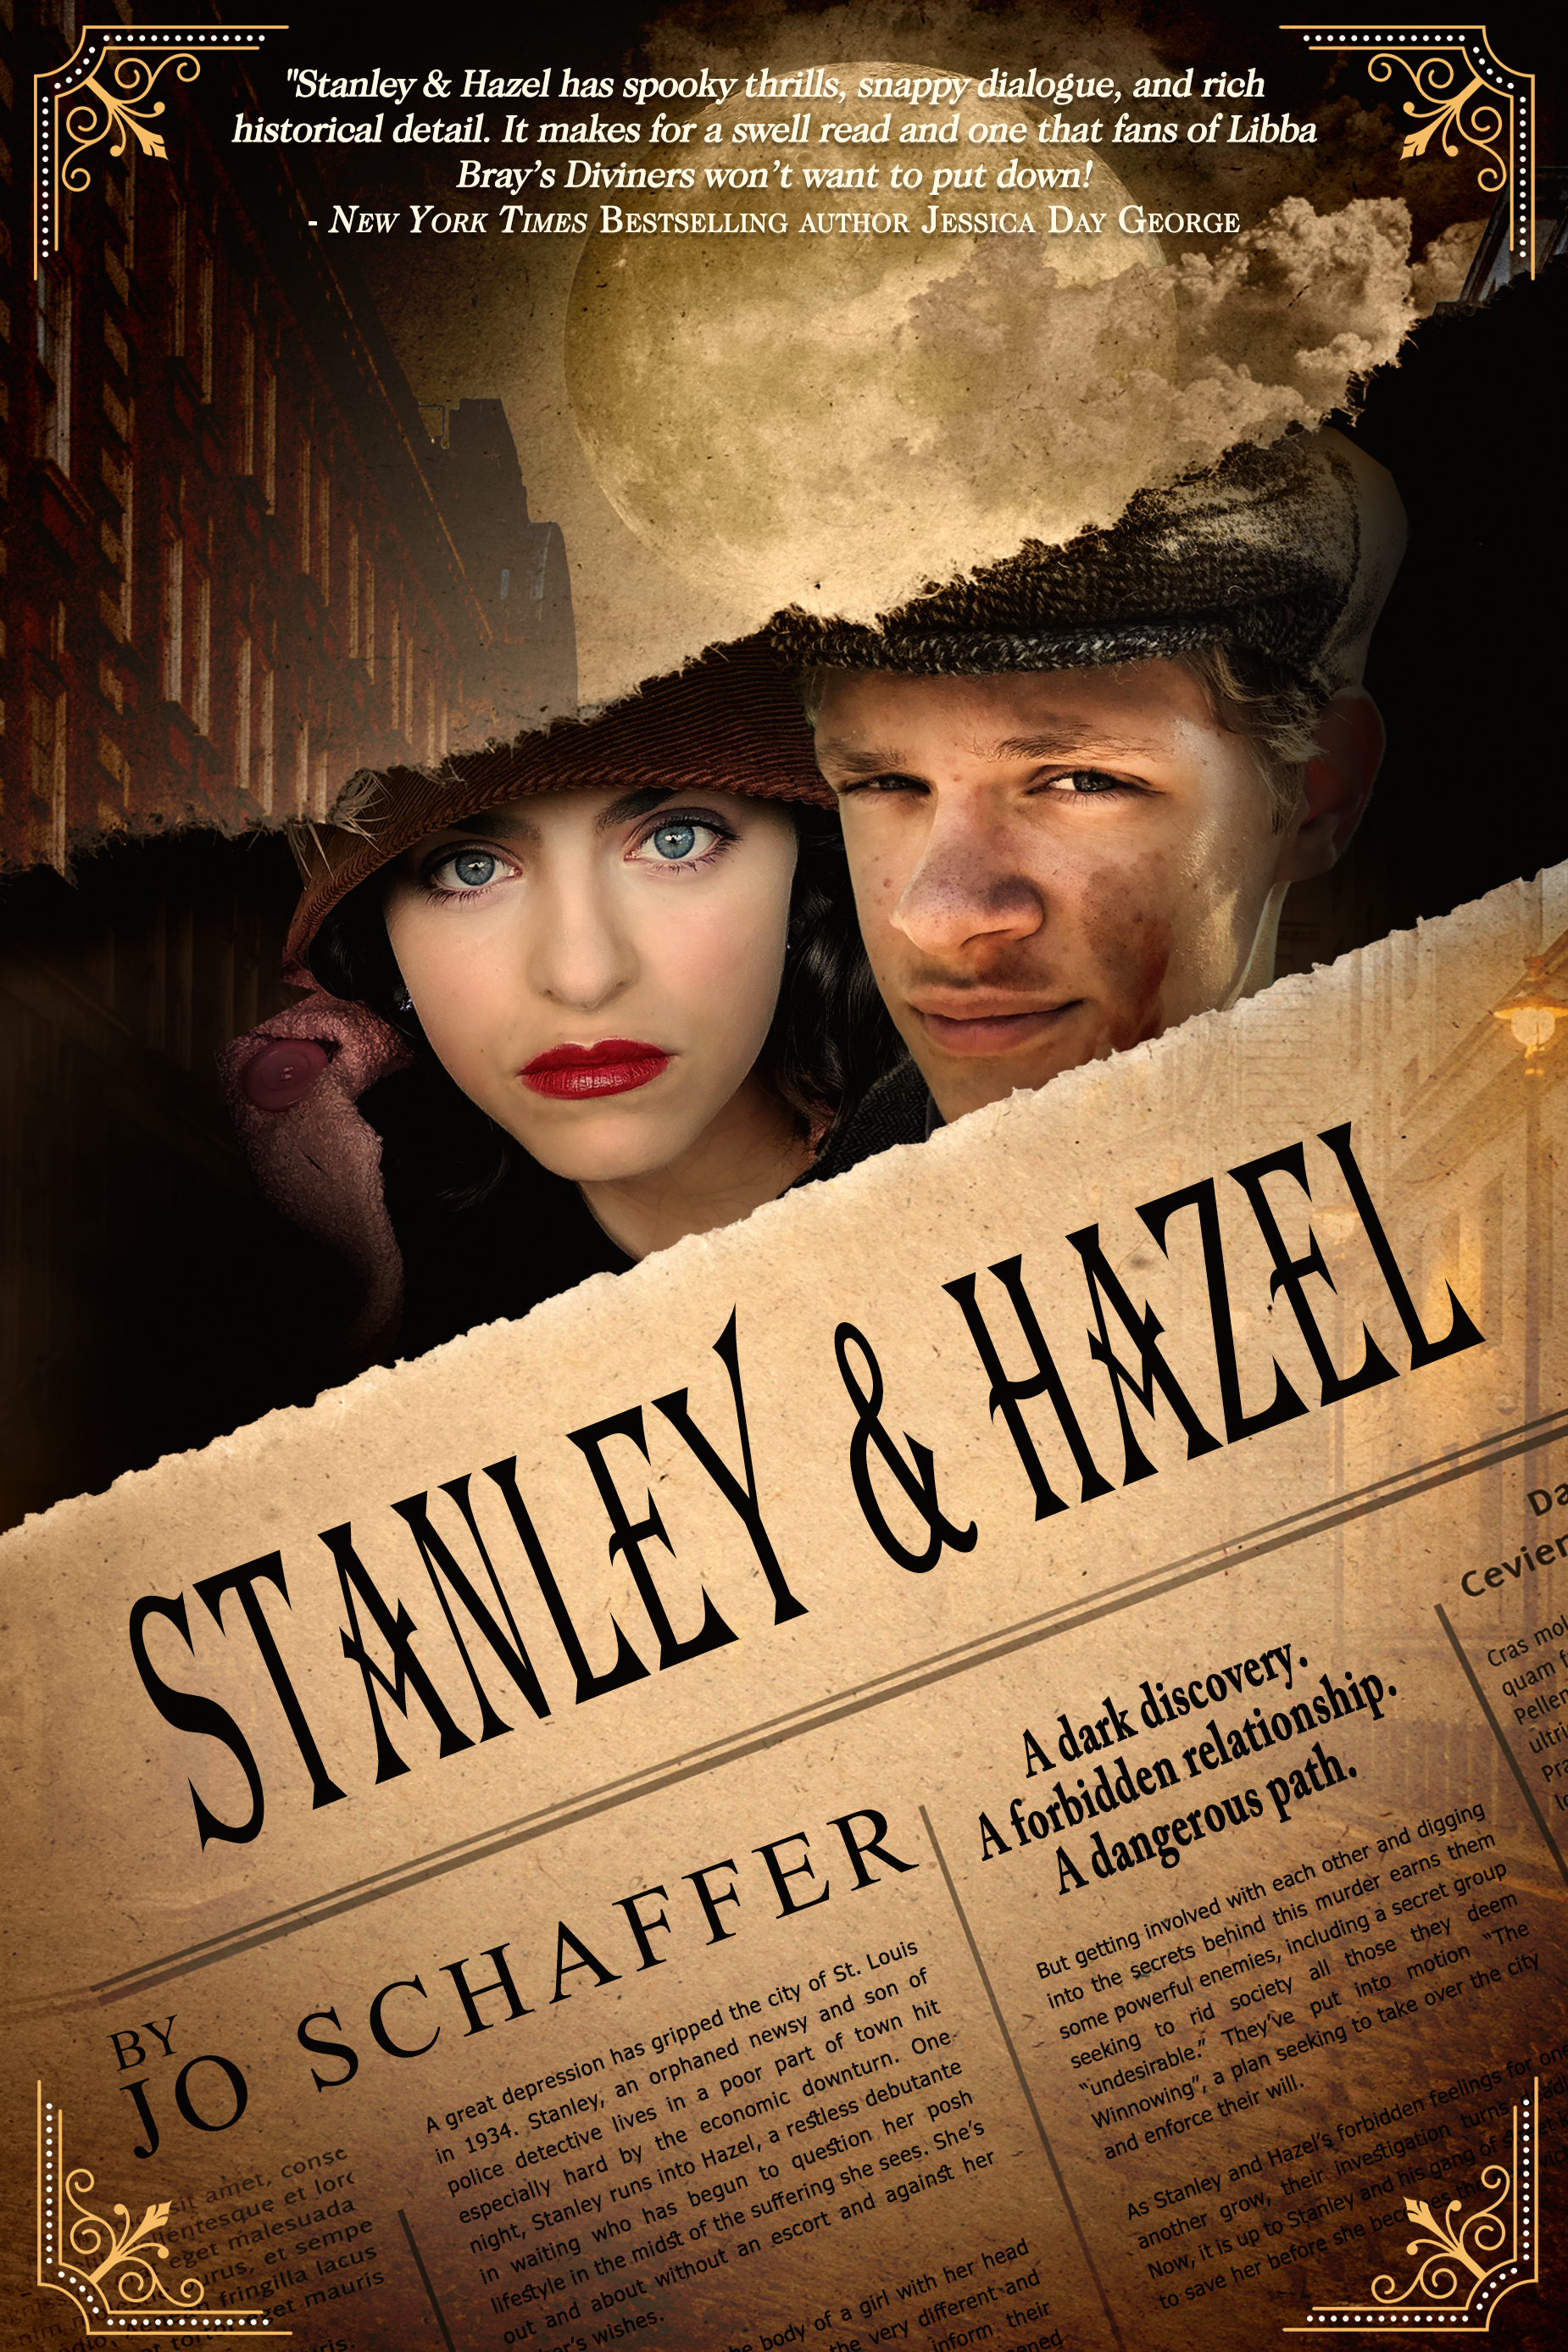 Stanley and Hazel